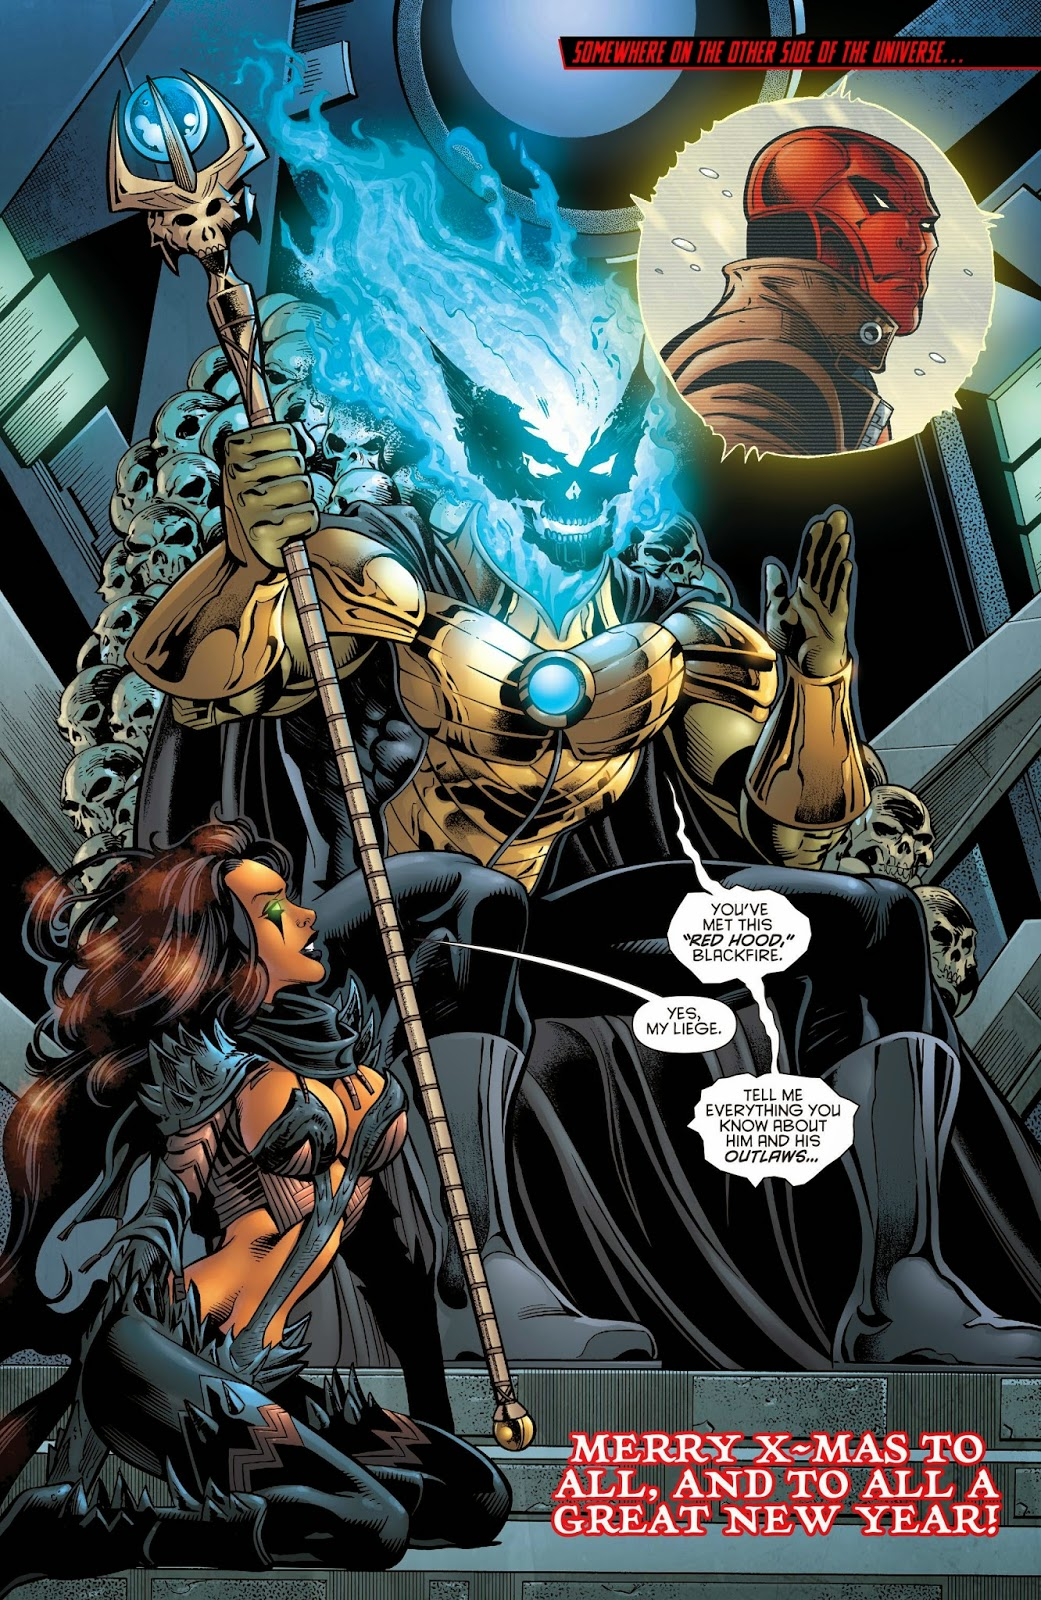 Weird science dc comics red hood and the outlaws annual 2 review weird science dc comics red hood and the outlaws annual 2 review and spoilers sciox Images